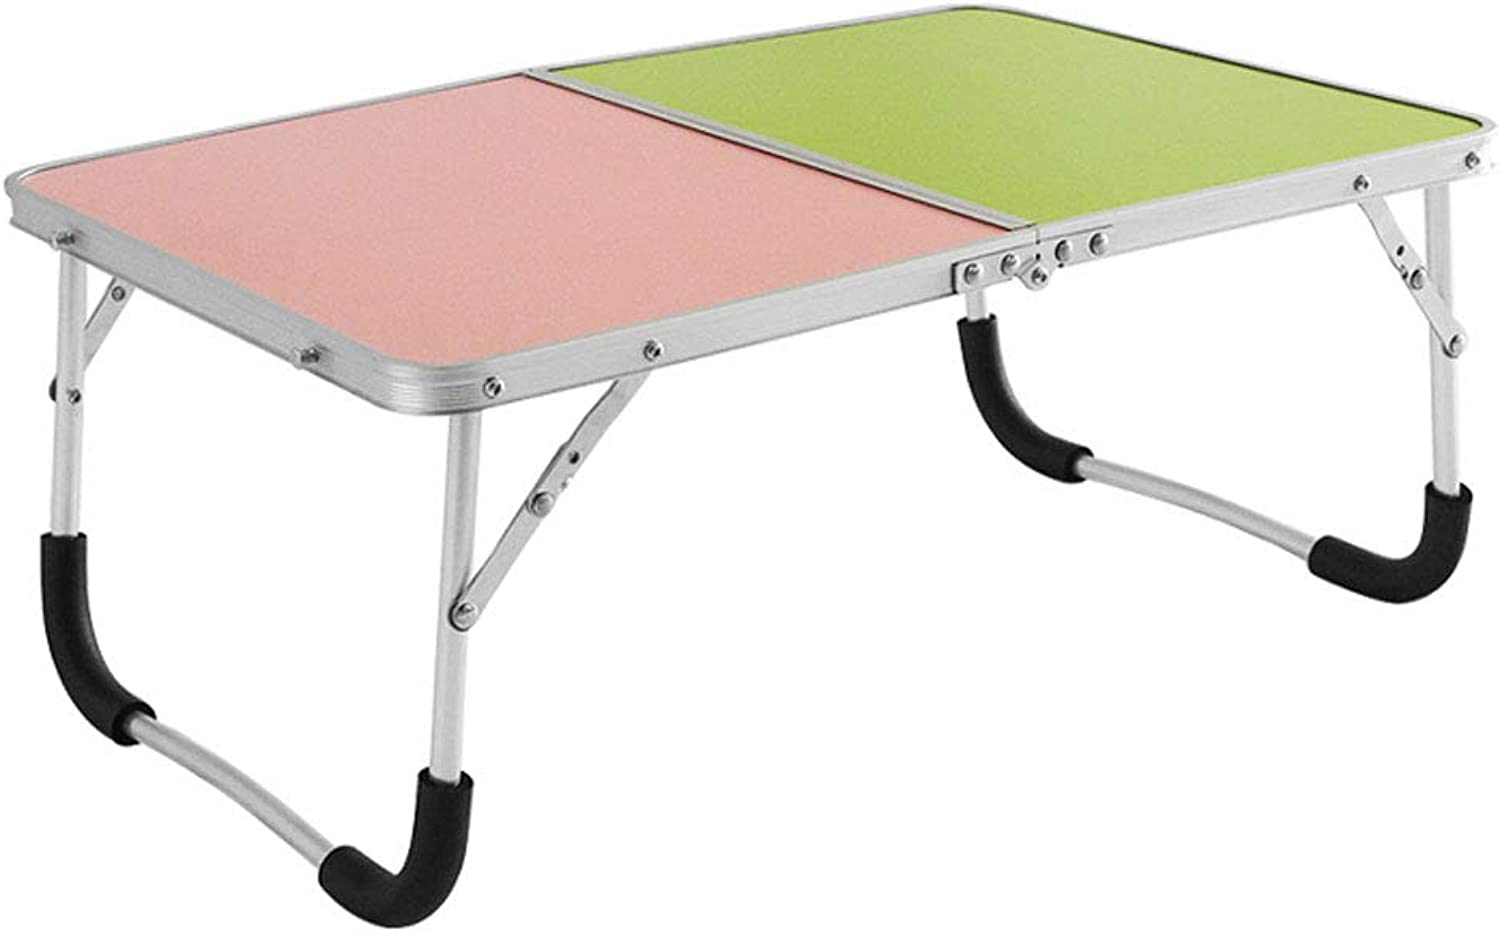 ZDD Folding Table- Modern Minimalist Household Portable Folding Table, Home Bedroom Laptop Table (color   Pink Green A, Size   61x42.5x26.5cm)